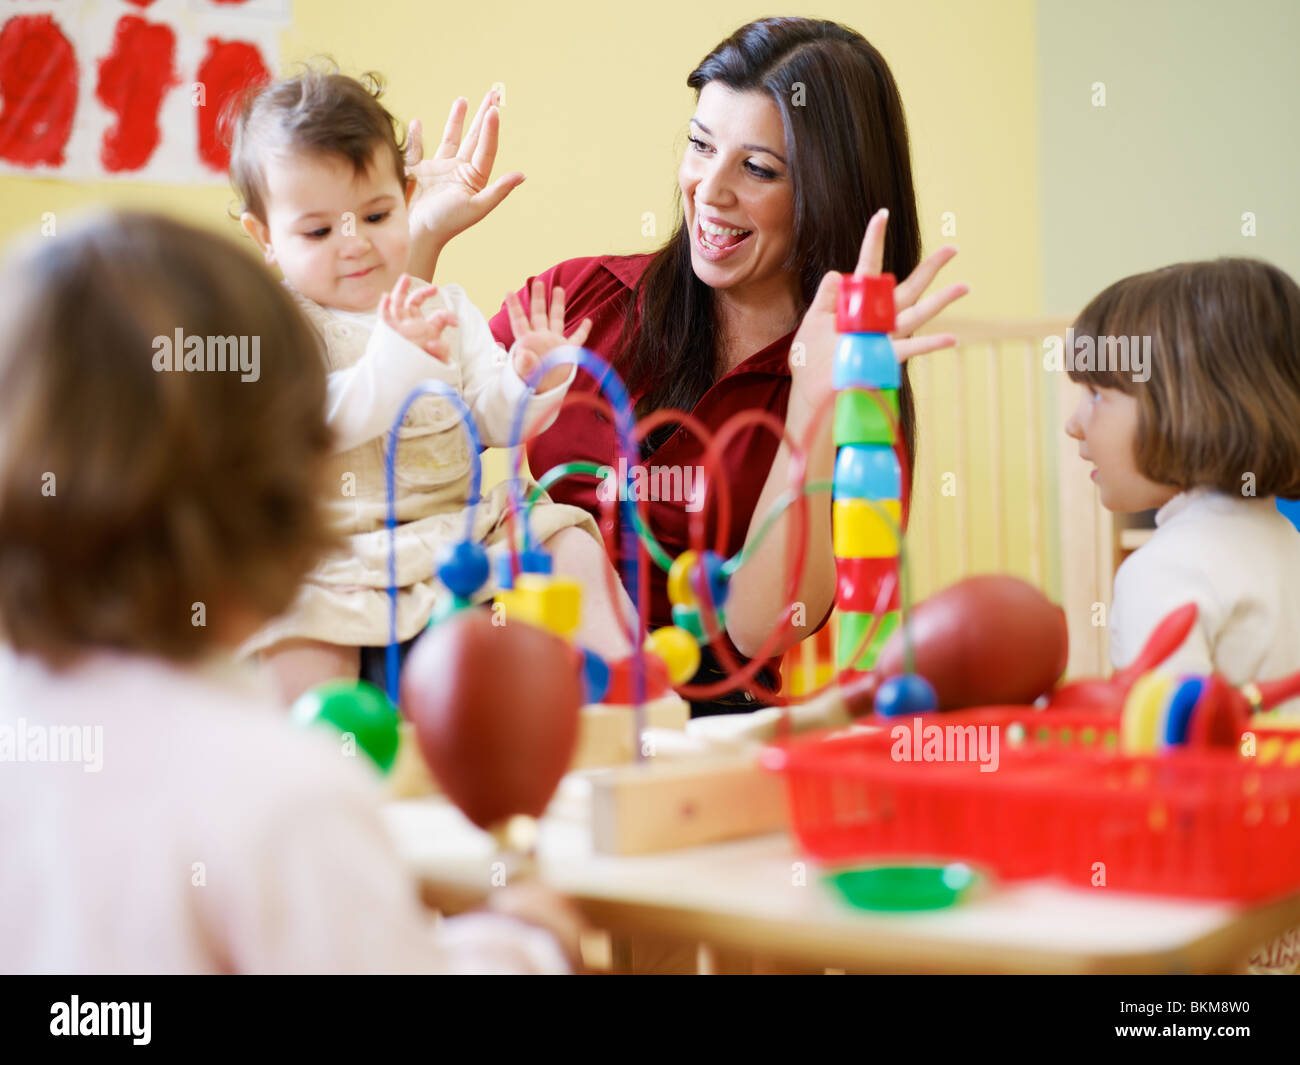 female toddler and 2-3 years girl playing in kindergarten. Horizontal shape - Stock Image